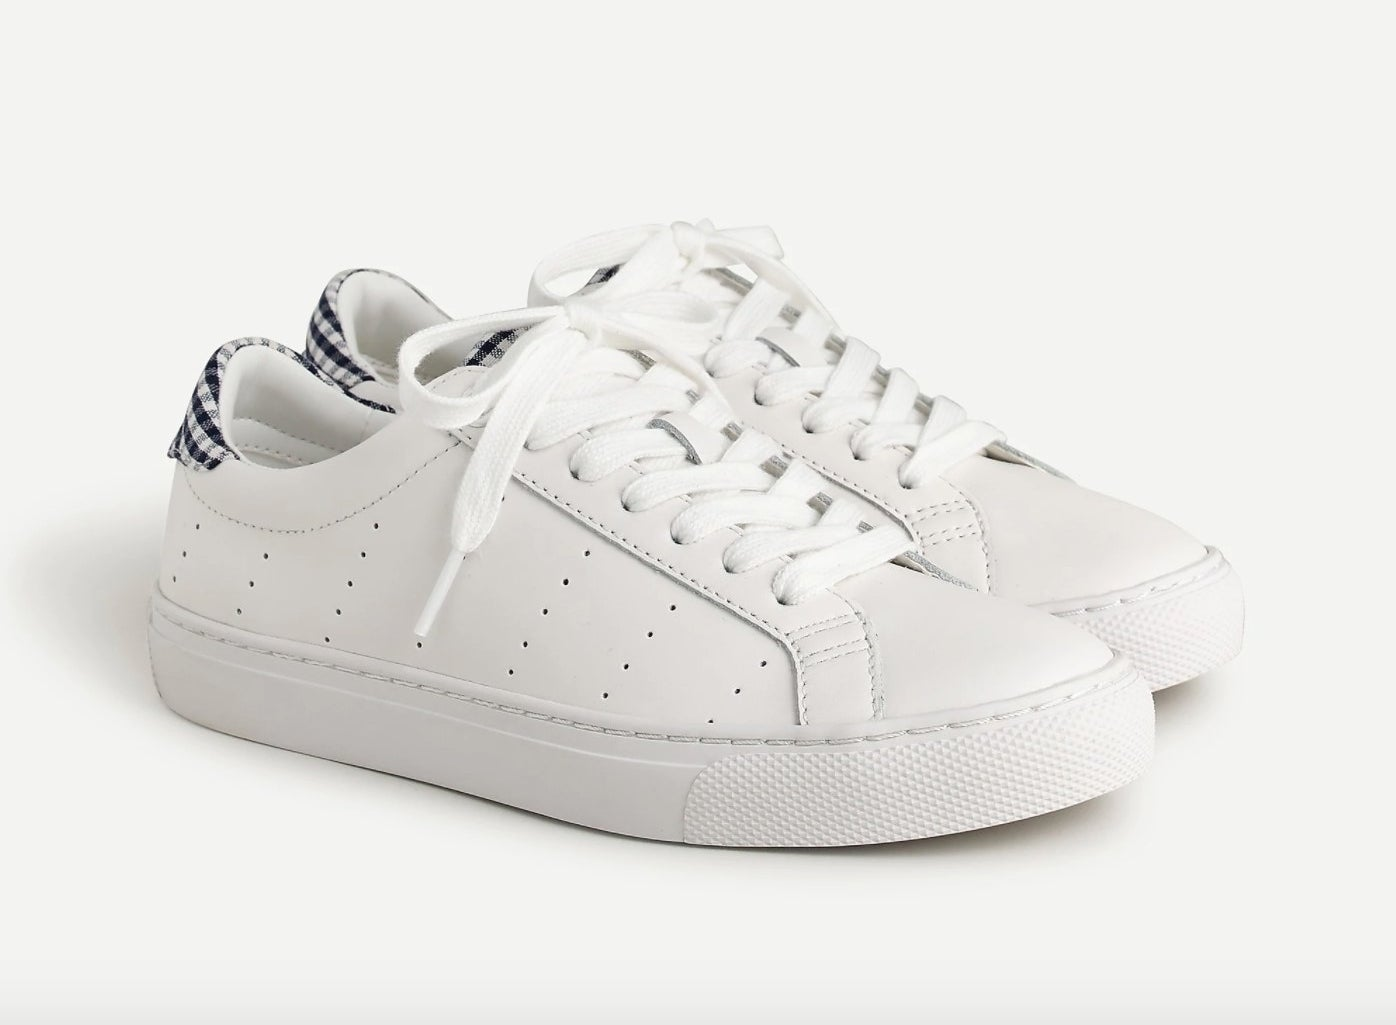 The sneakers in white with gingham on the heels